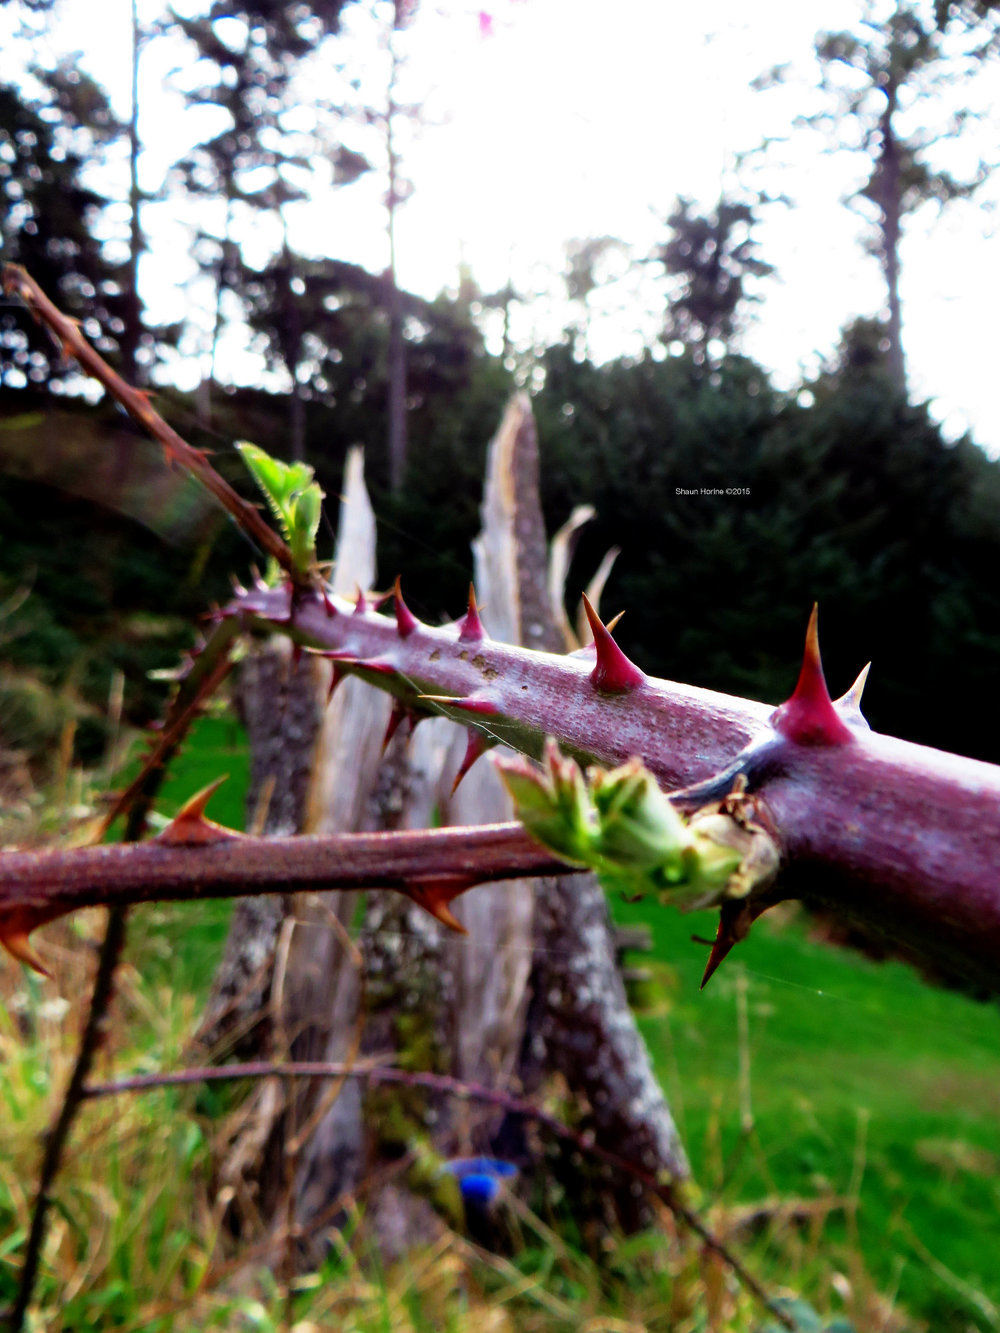 """A thorny branch at """"Goonies Rock Beach"""" (that's what I call it) on the Oregon coast. March 1st, 2015"""